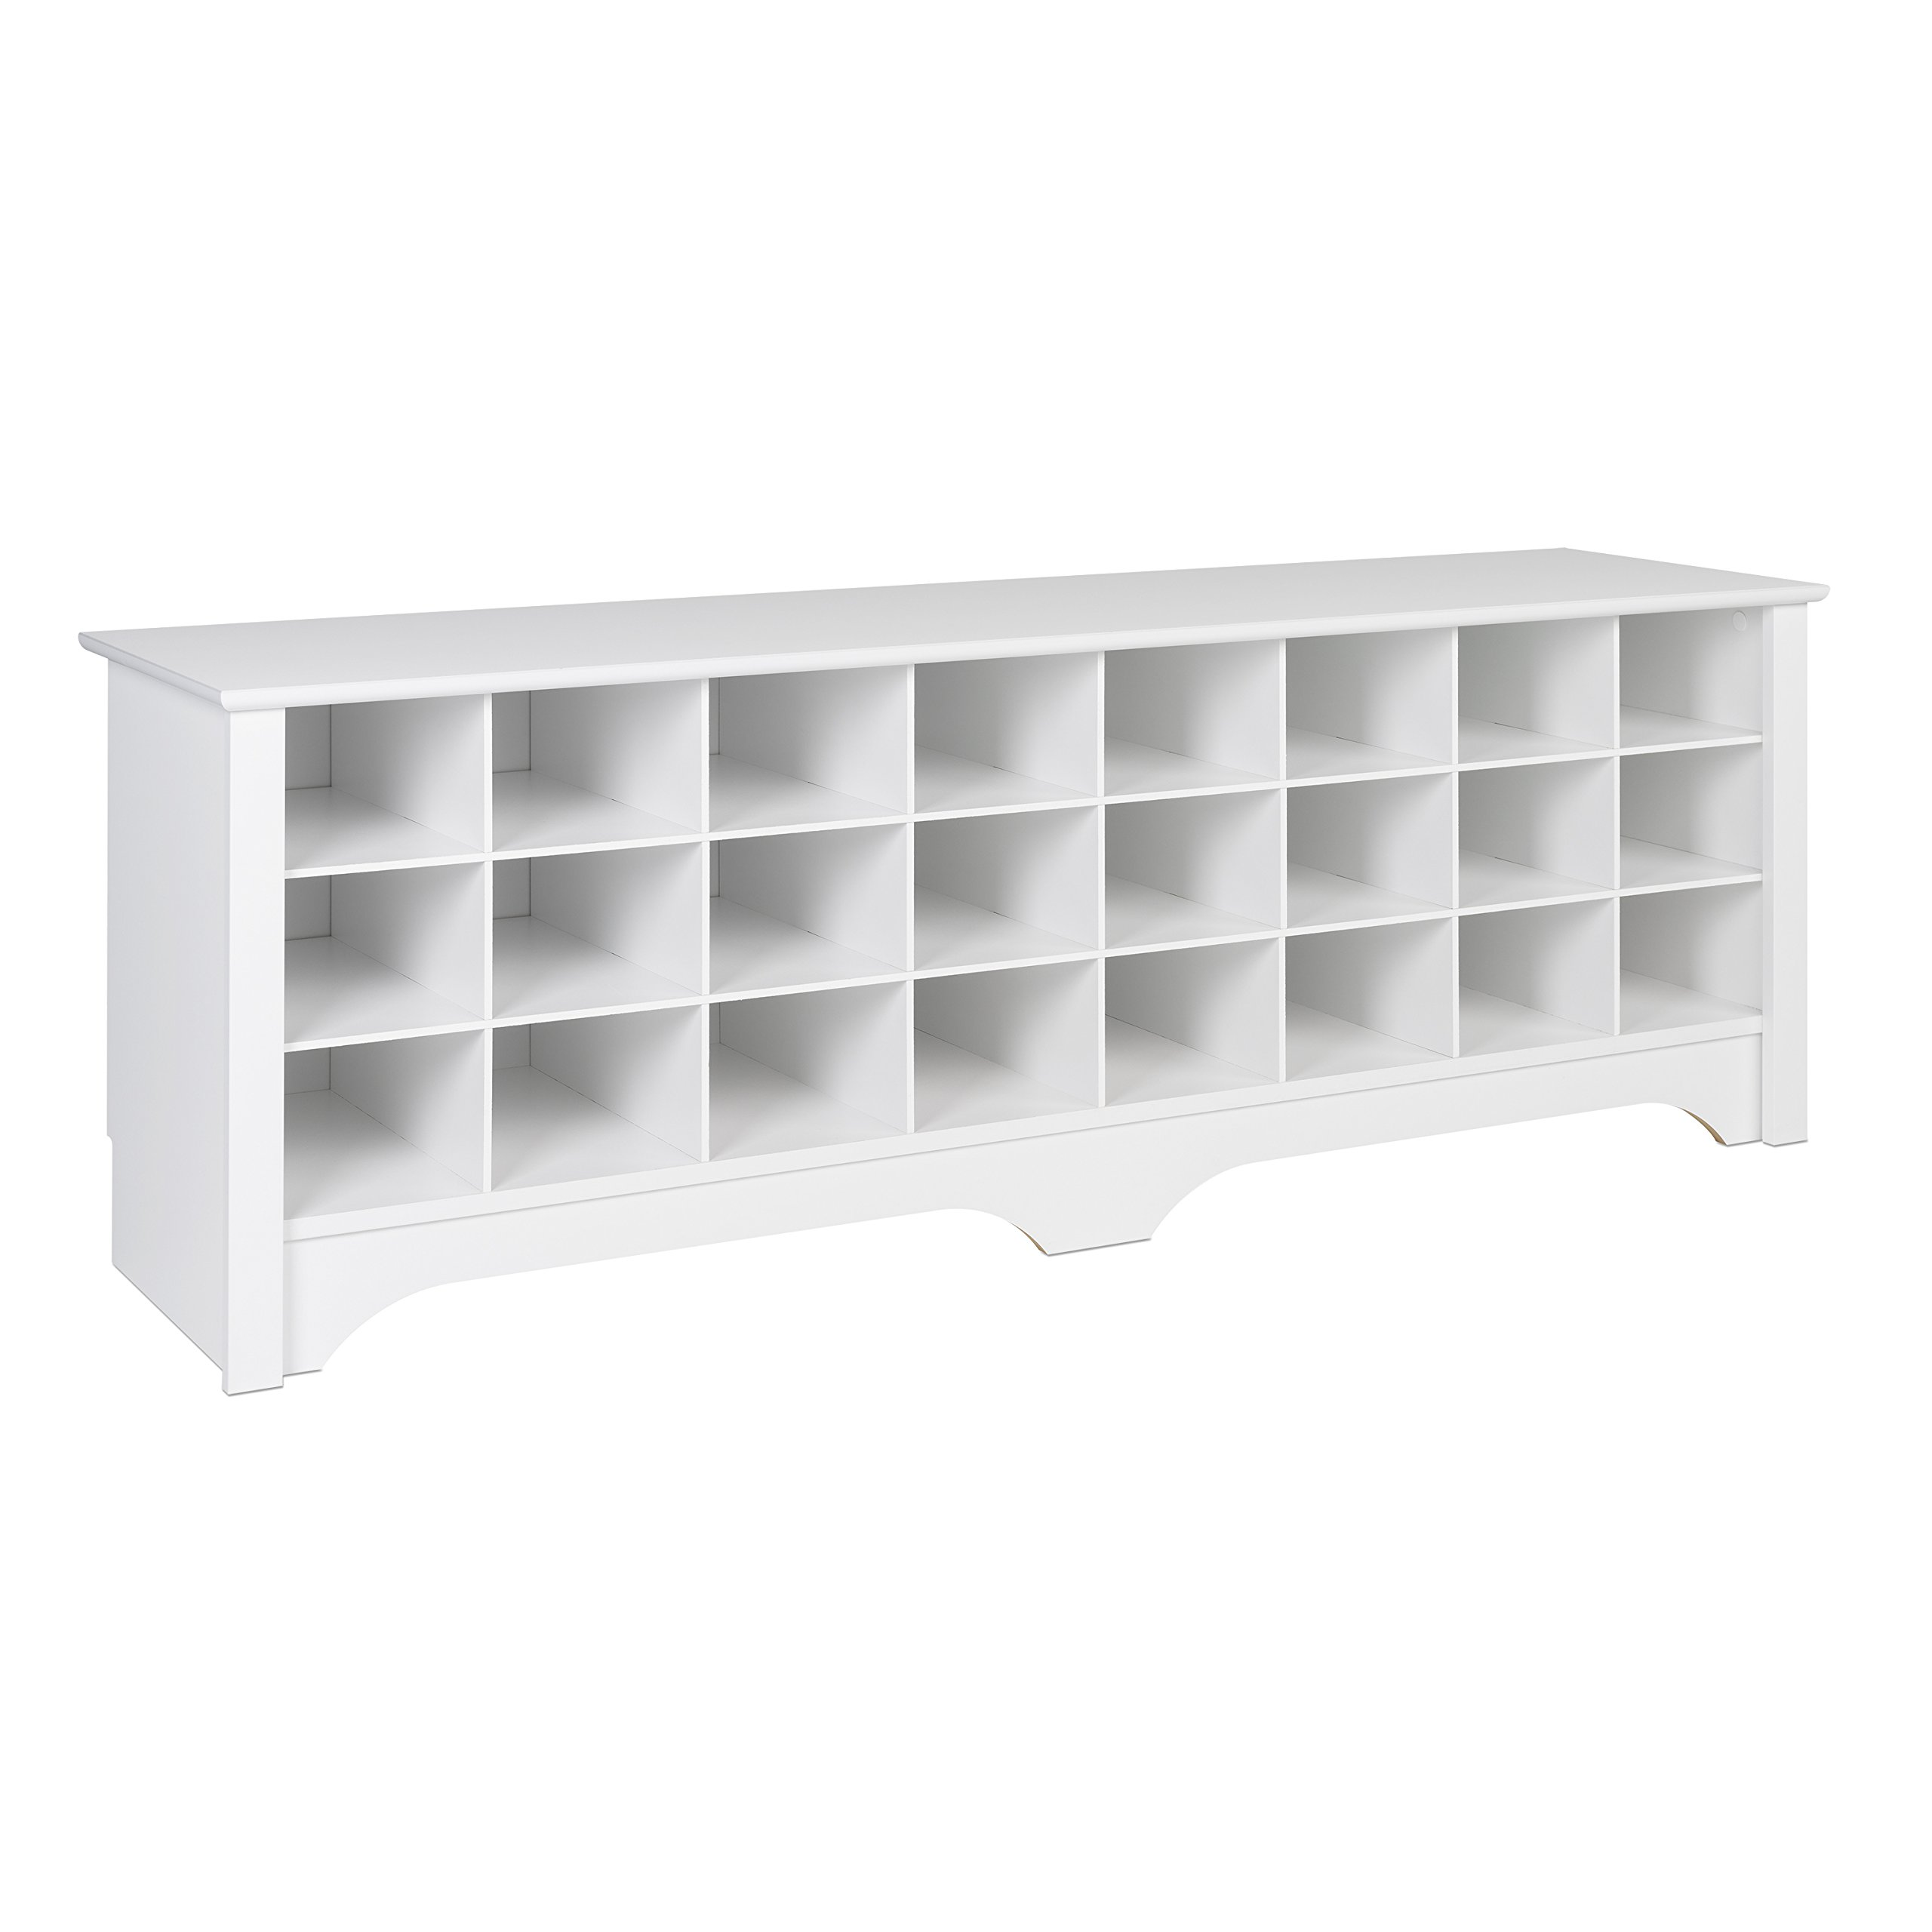 Prepac  24 Pair Shoe Storage Cubby Bench, White by Prepac